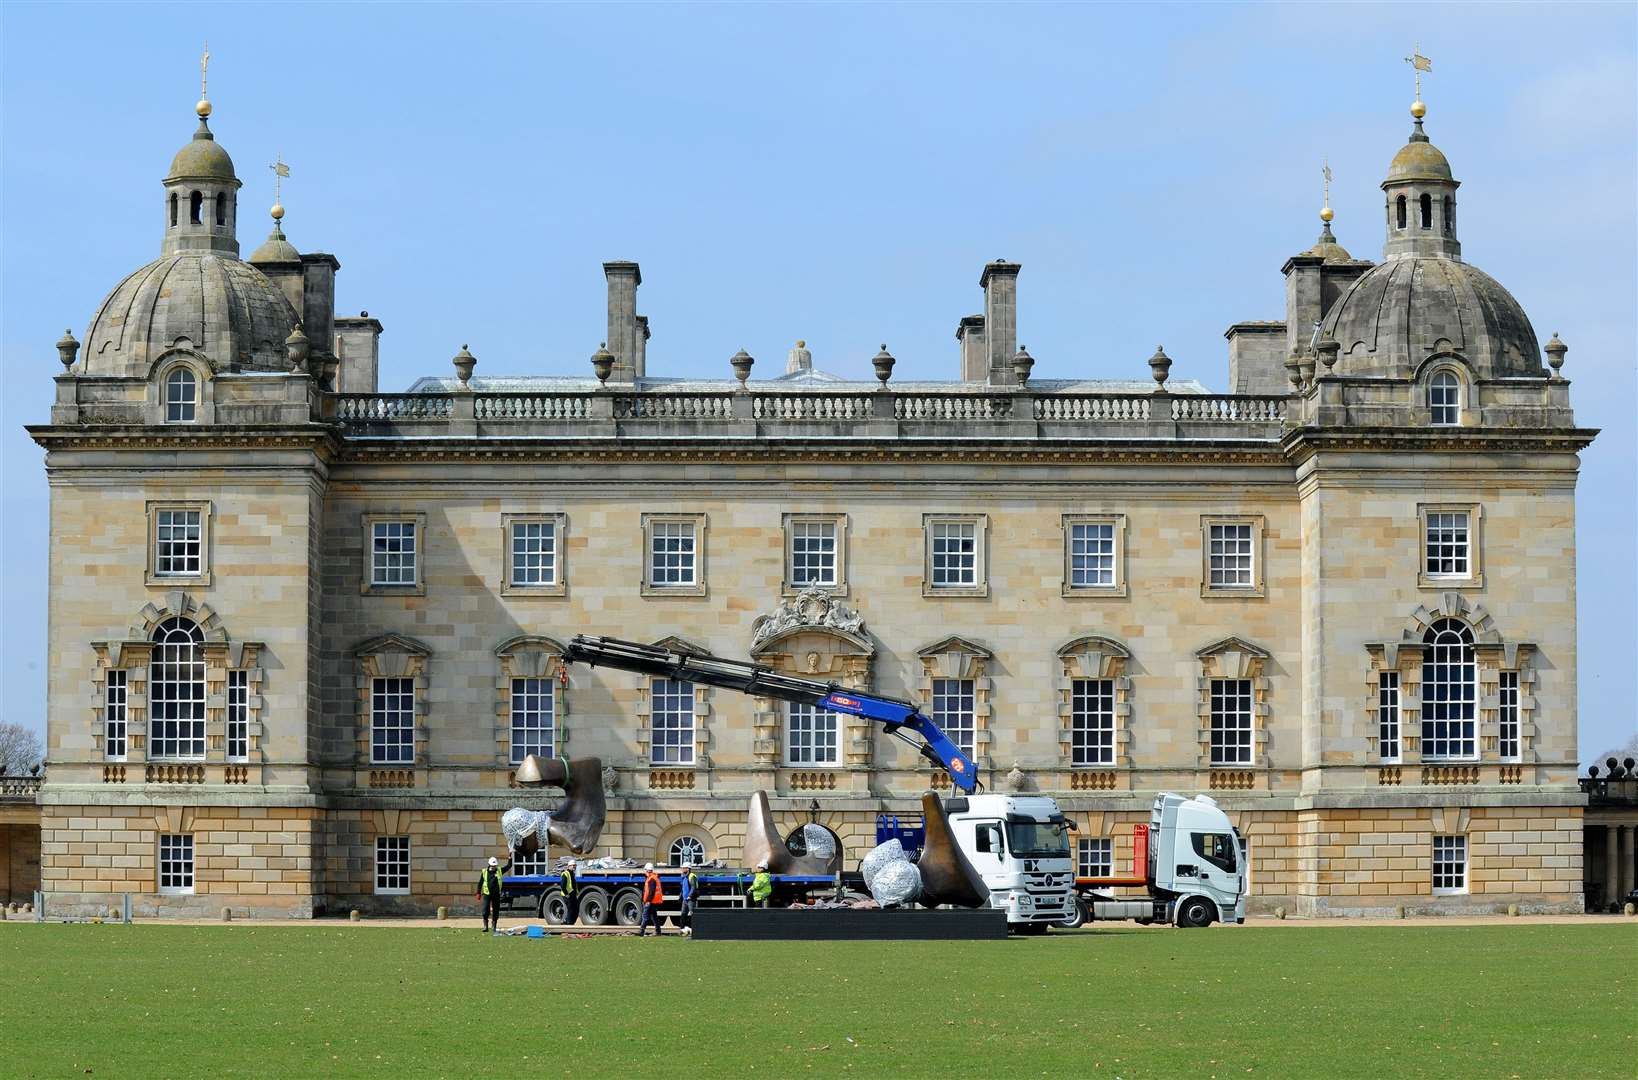 Work going on at the East side of Houghton Hall. MLNF-19PM04075